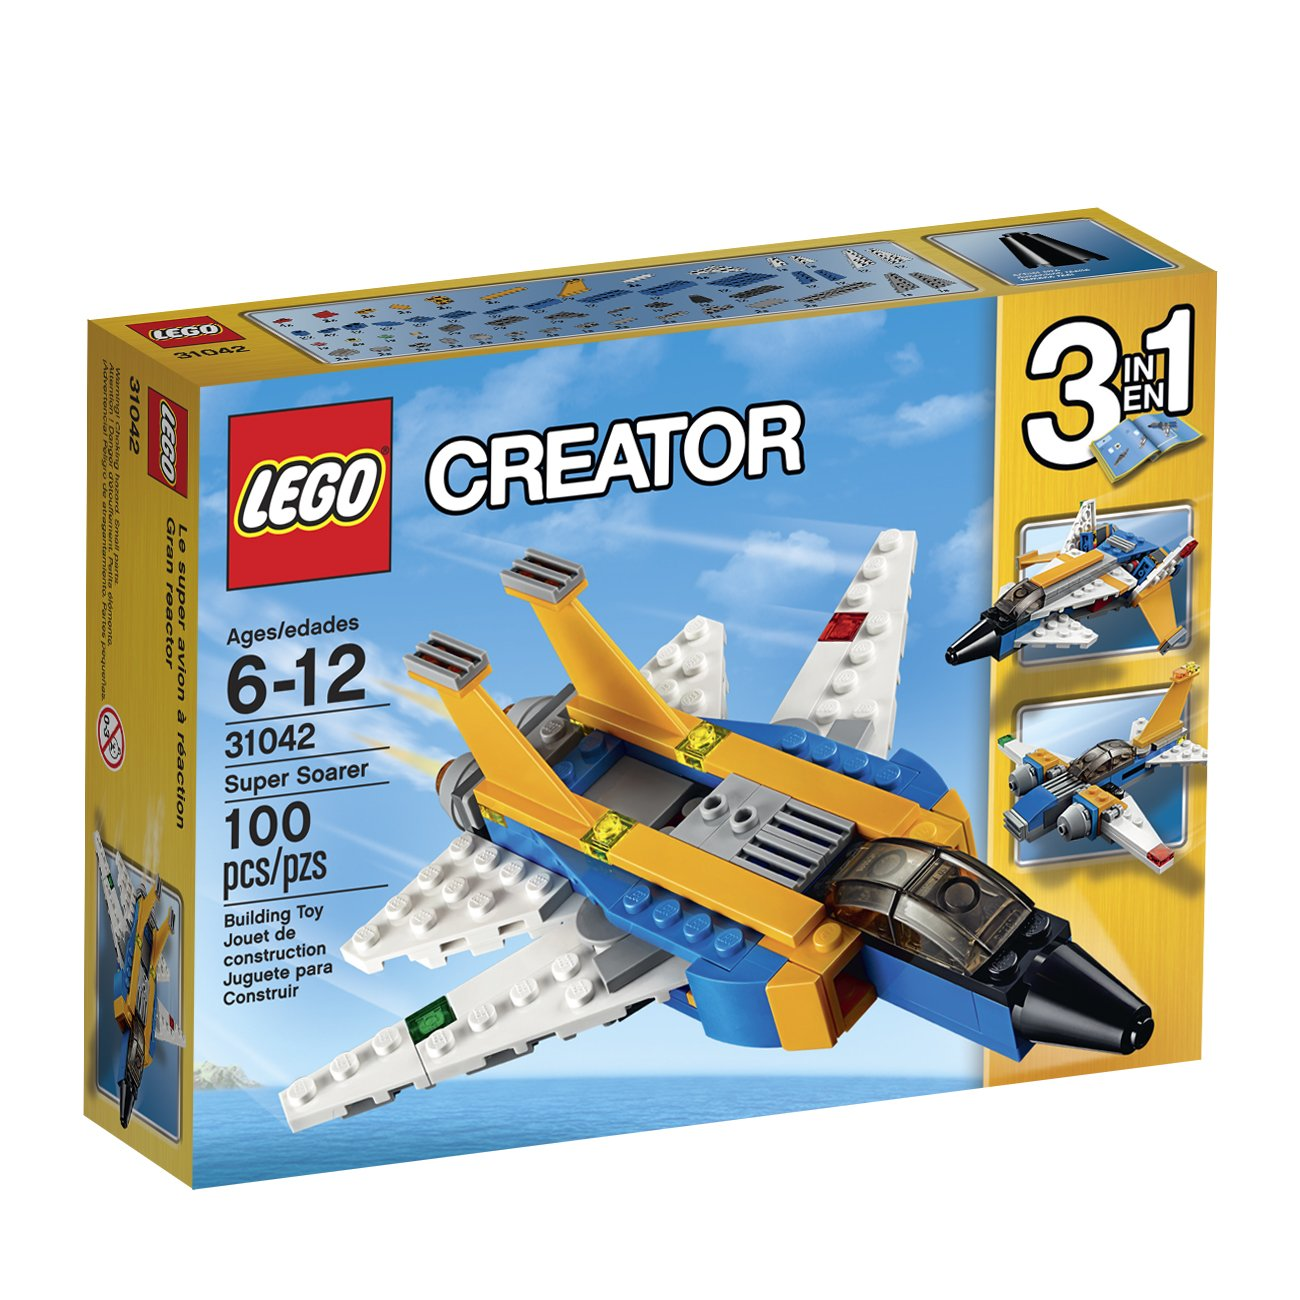 $9.67 (was $12.99) LEGO Creator Super Soarer Kit (100 Piece)